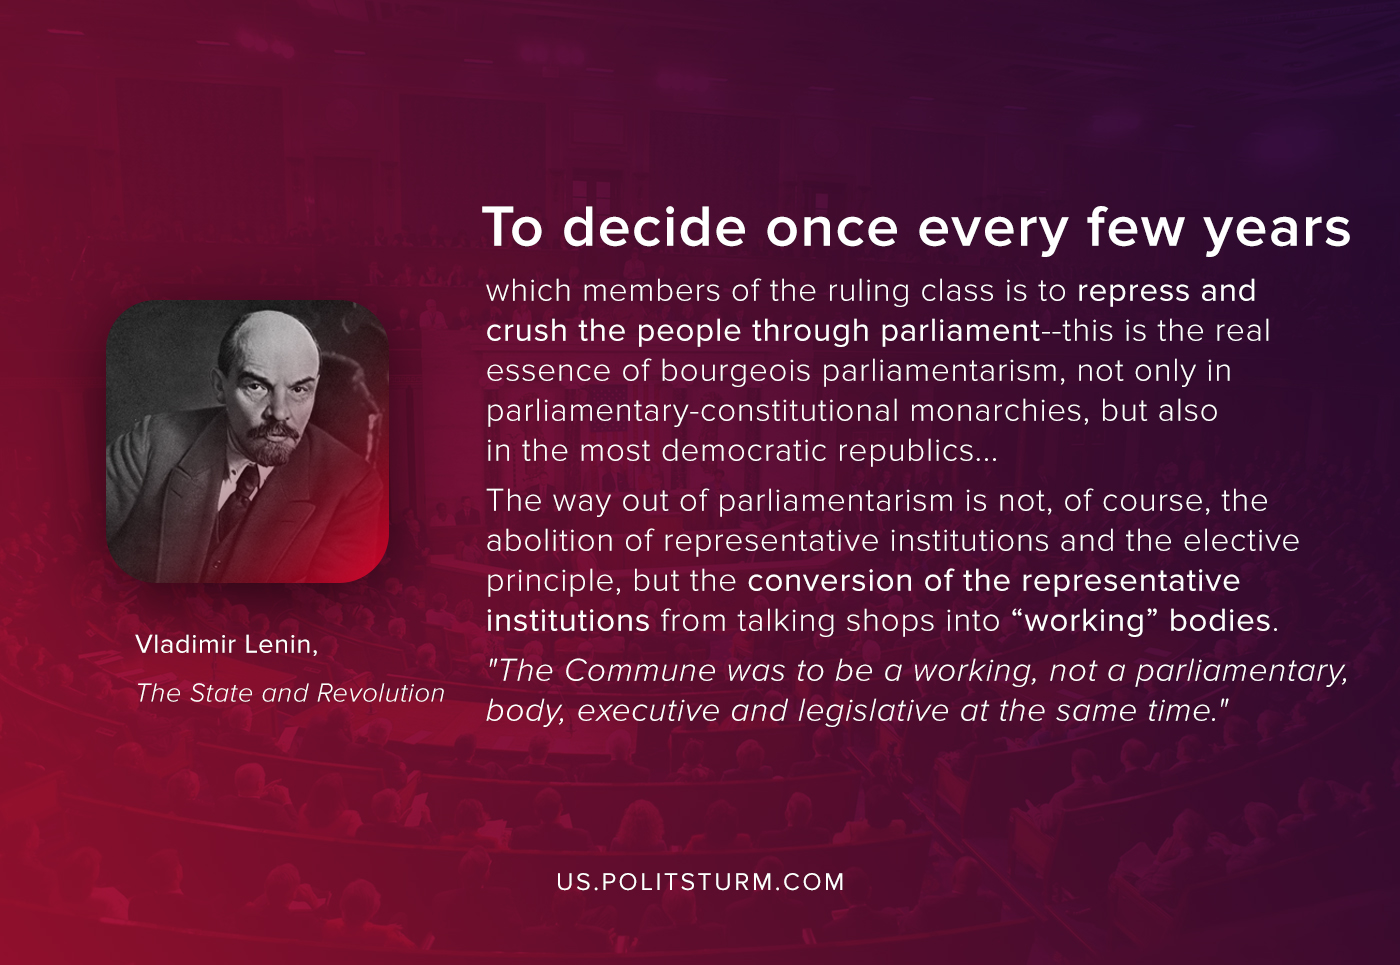 Lenin on Parliamentarism